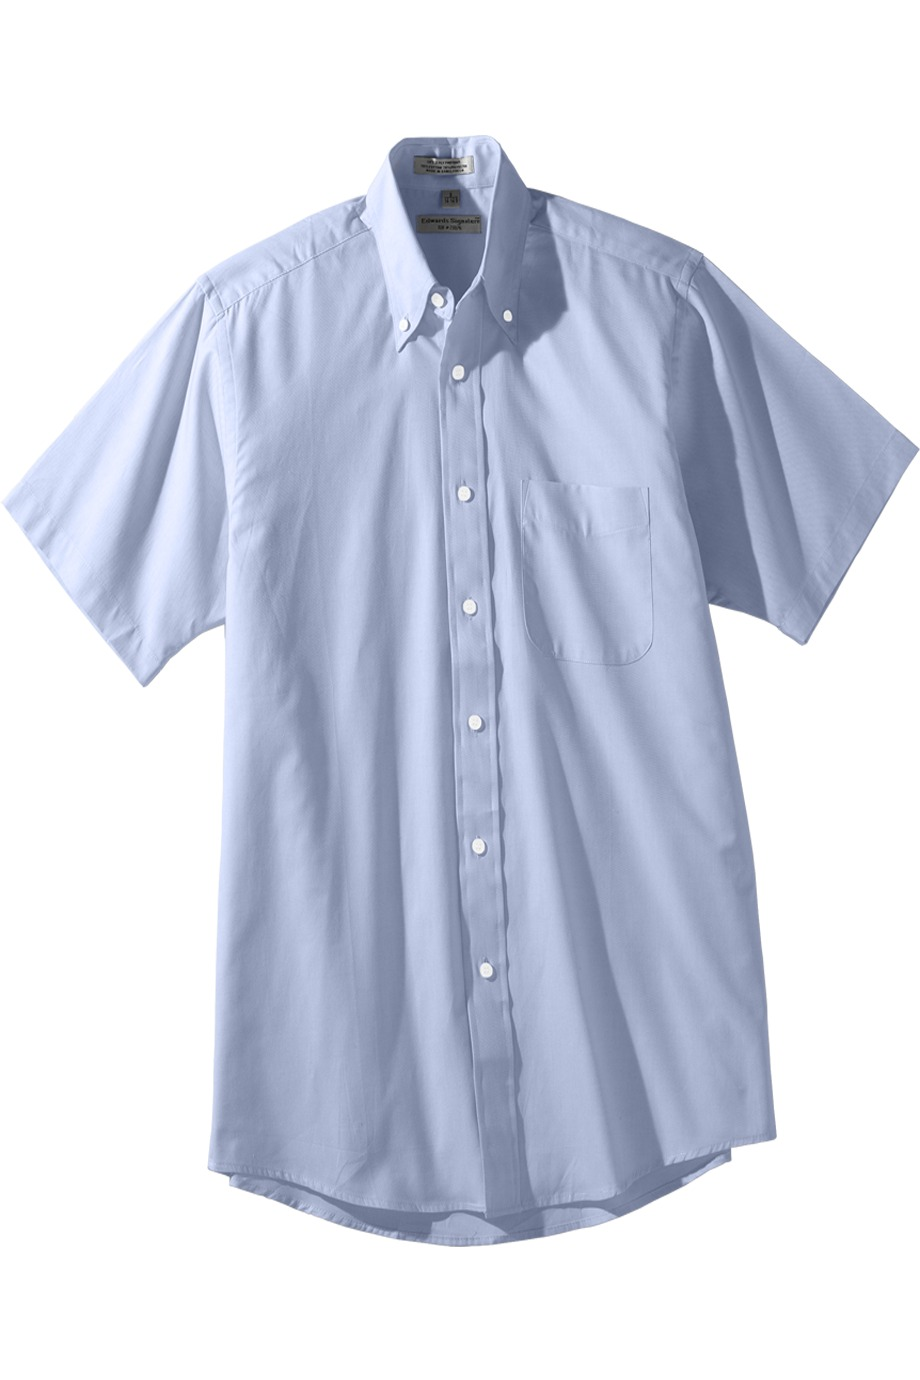 Edwards Garment 1925 - Men's Short Sleeve Pinpoint Oxford ...